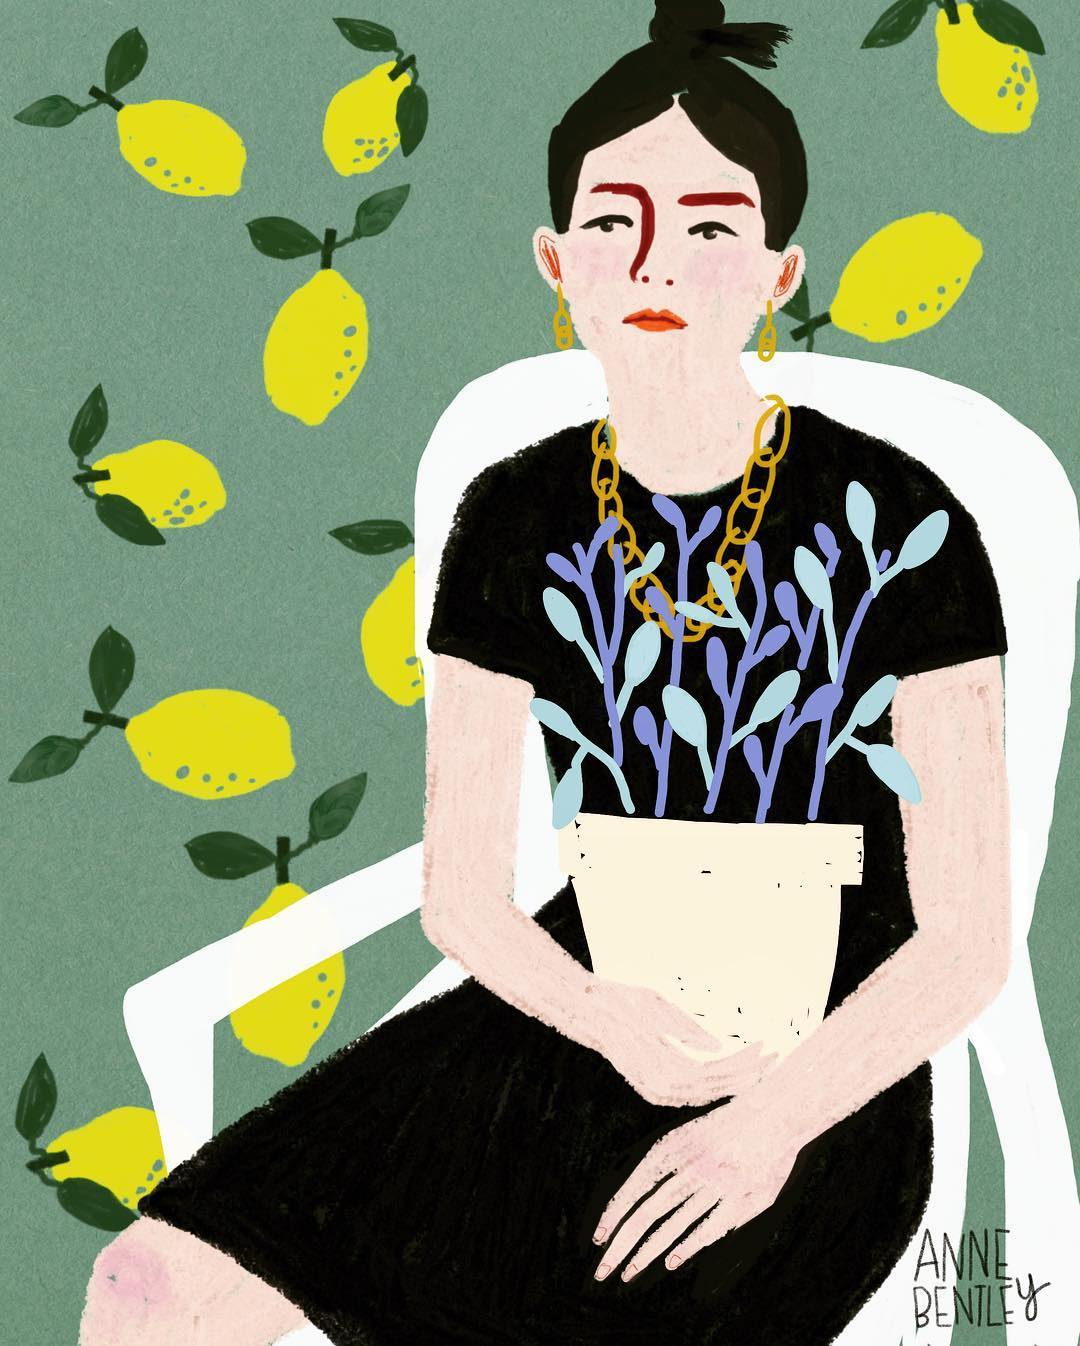 Illustrated portraits by Anne M. Bentley